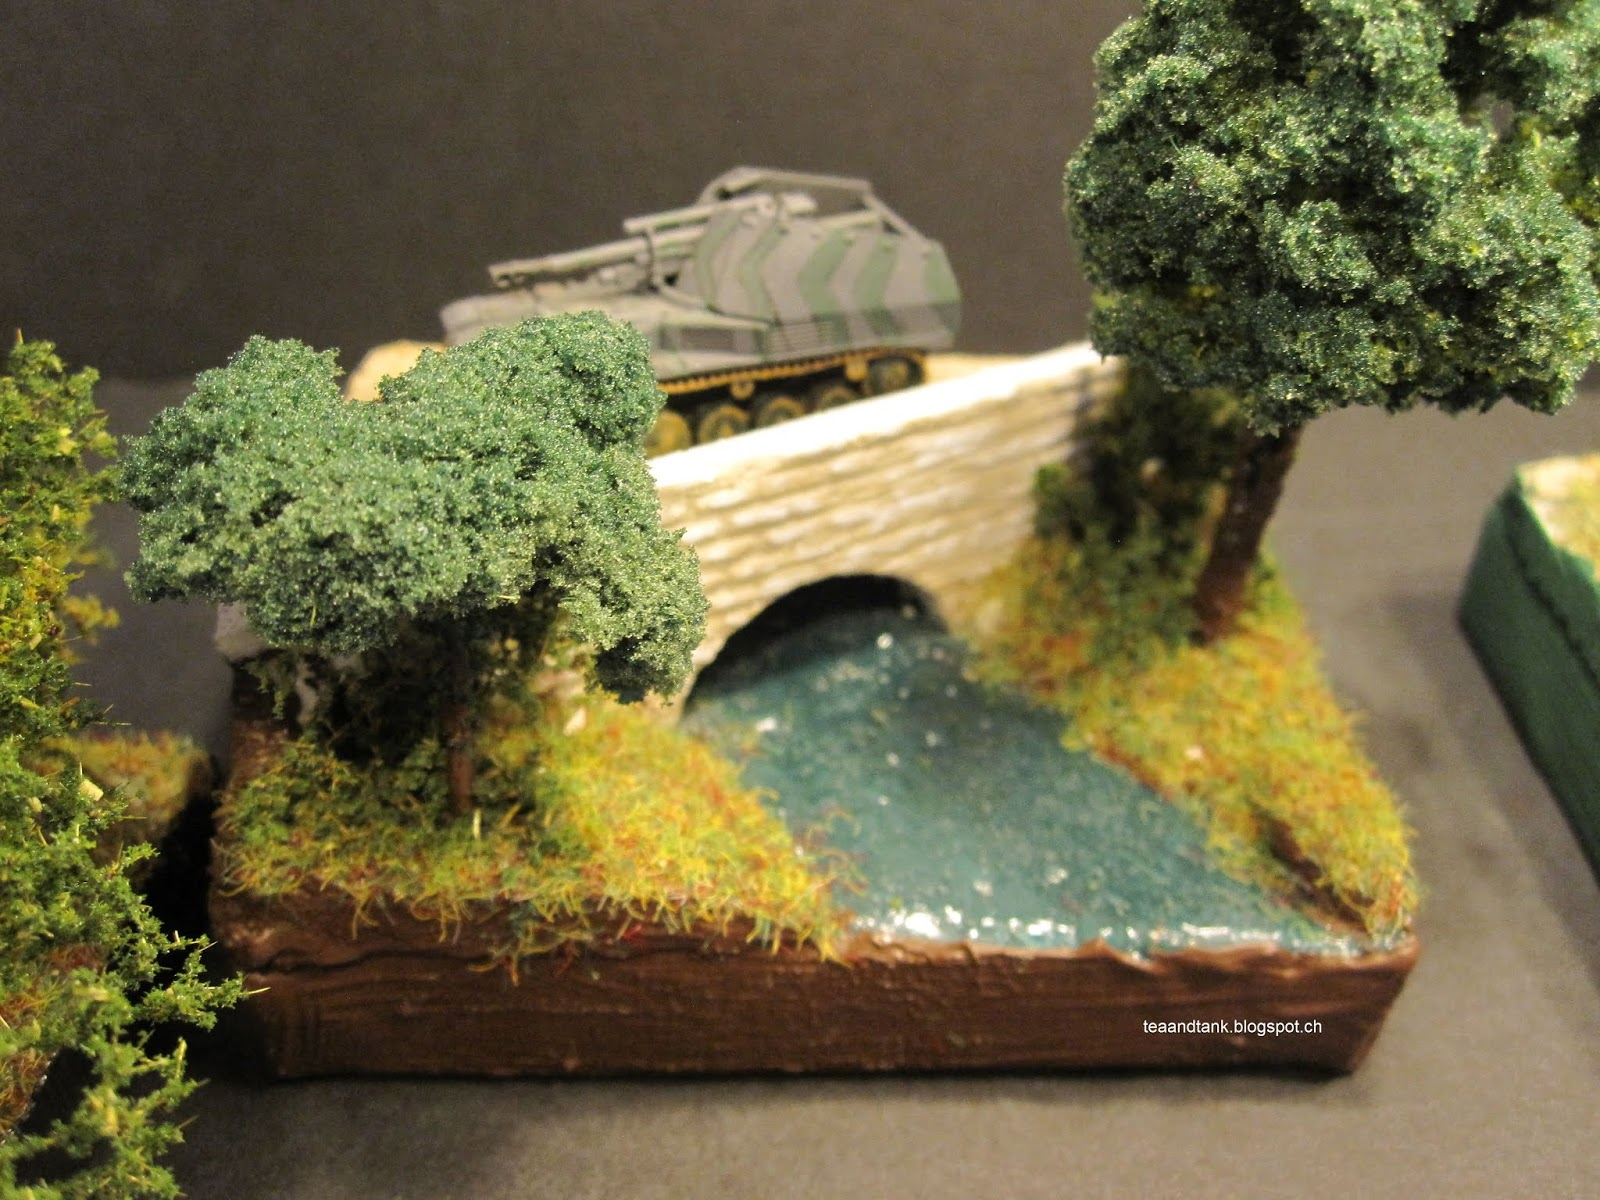 Tea And Tank: New Set Of Minis, New 1/144 Dioramas 36/52